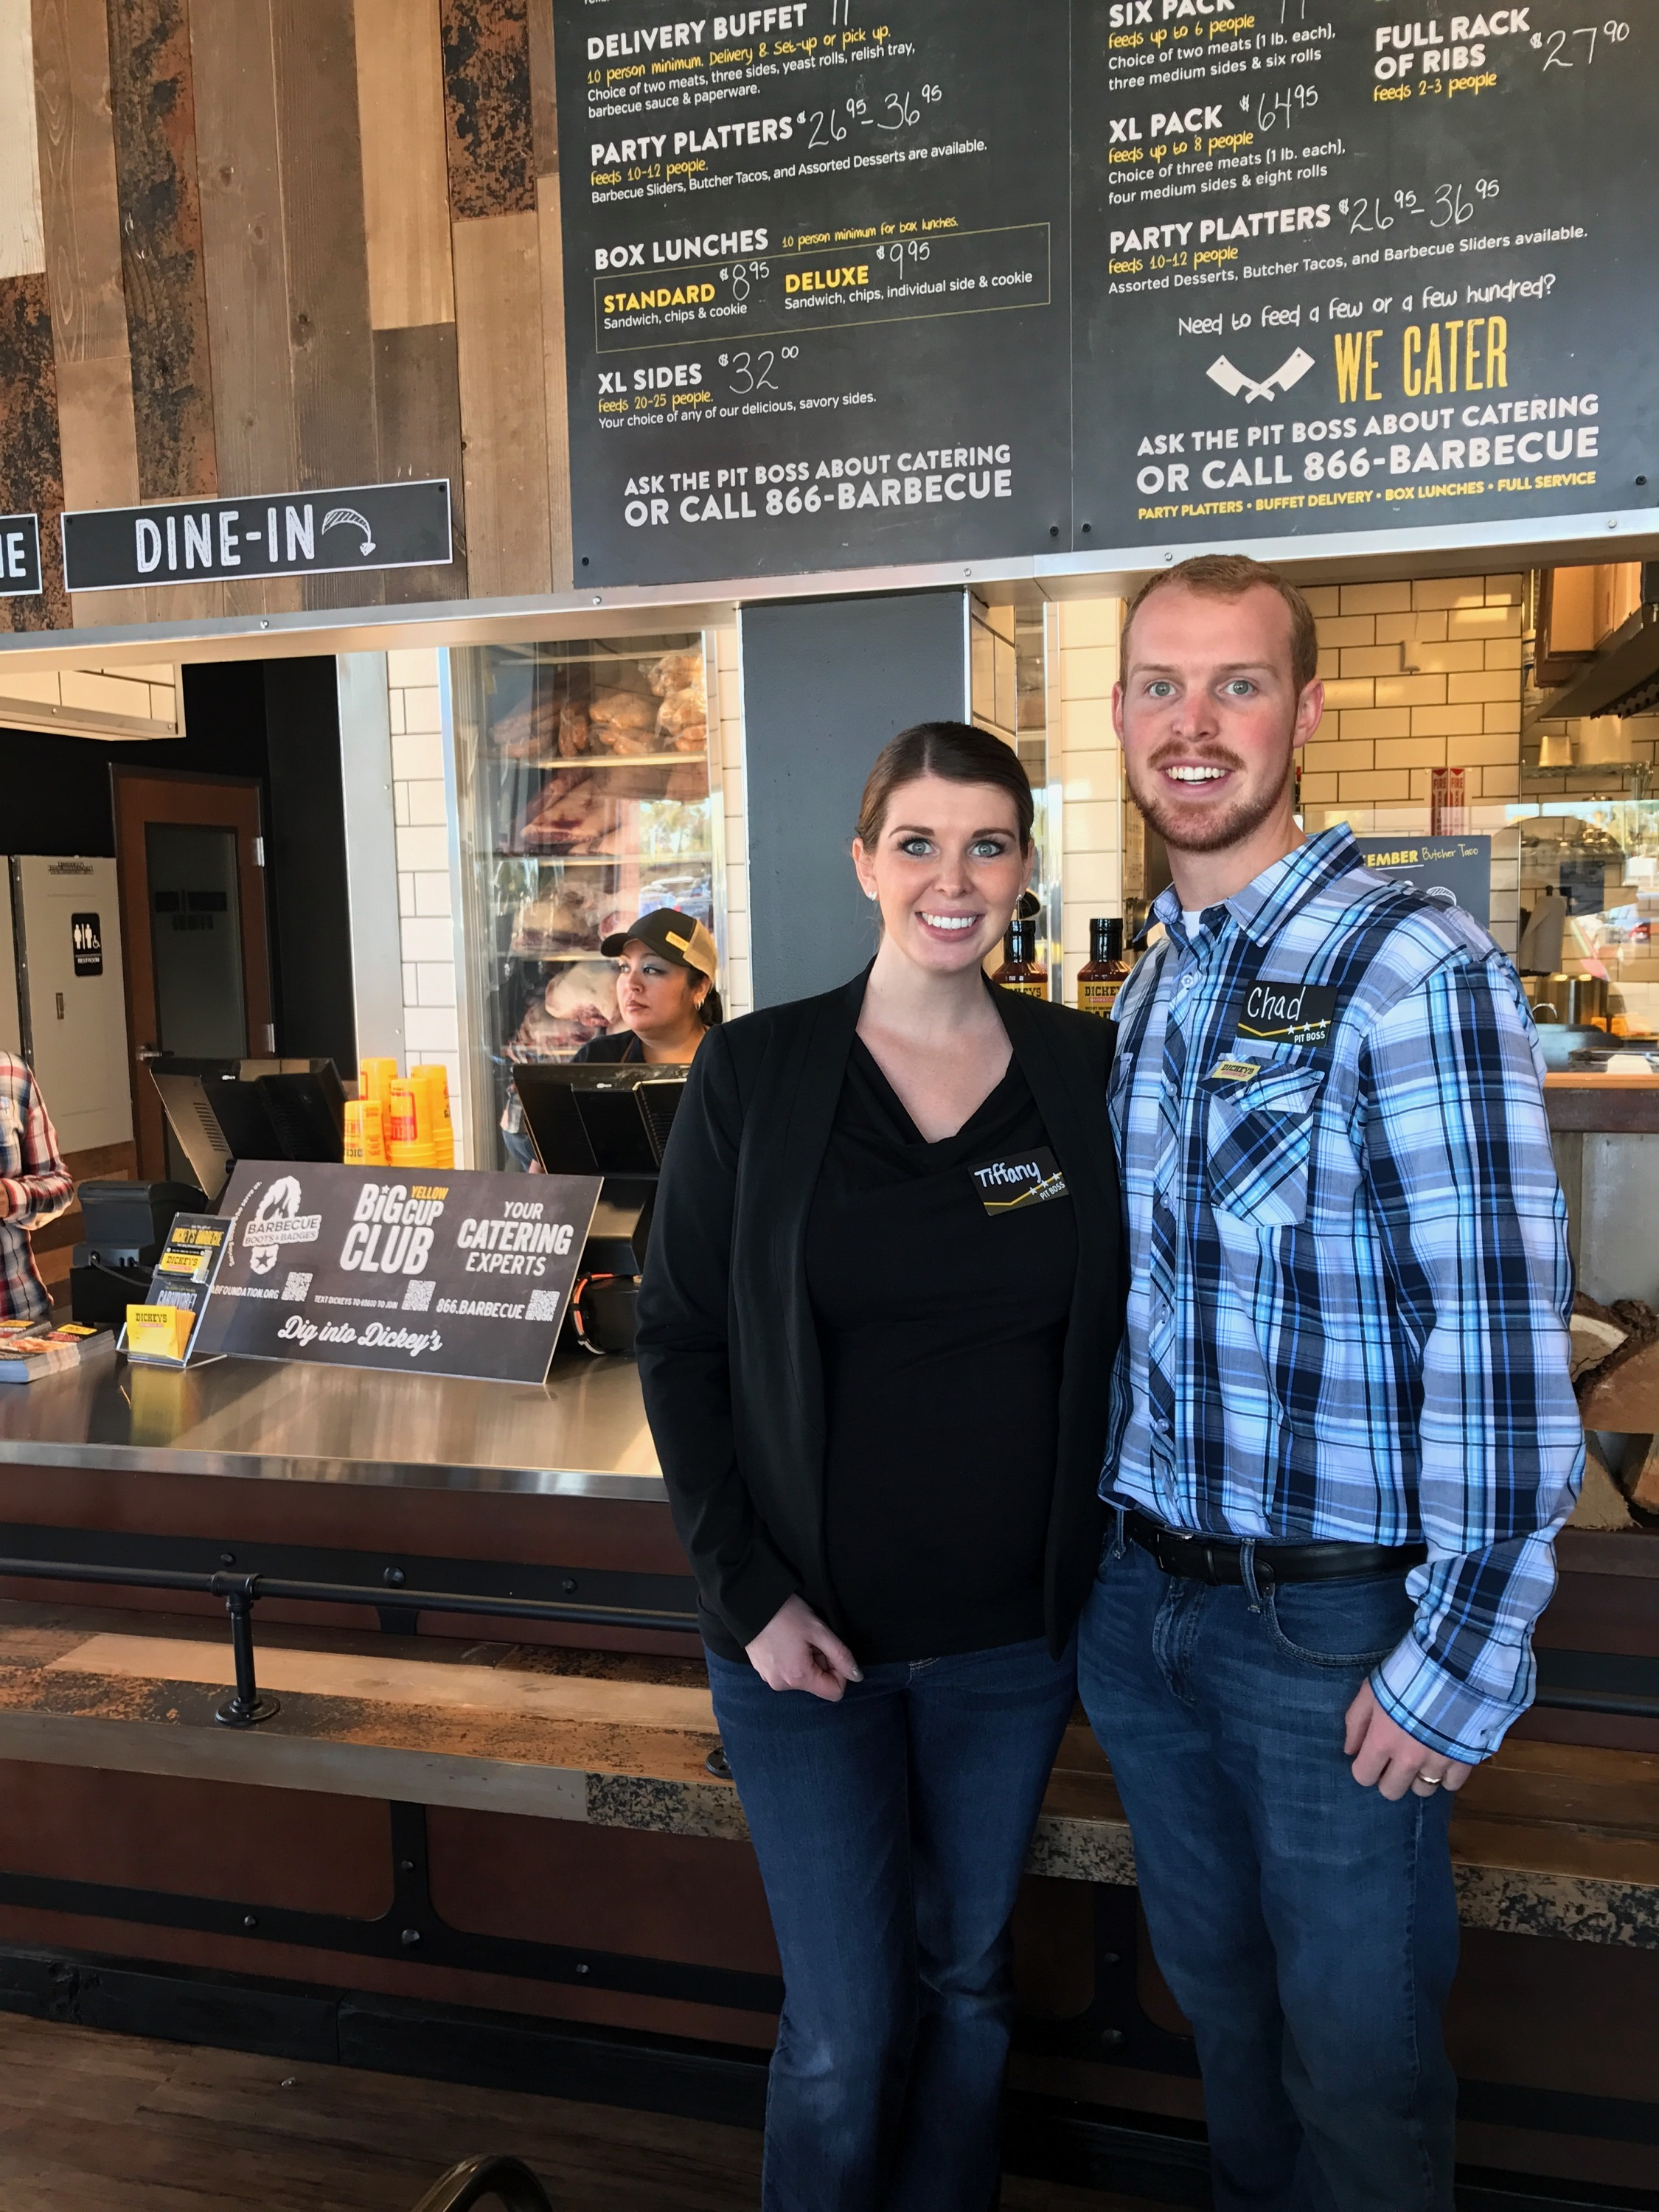 Local Entrepreneurs Open Their Second Dickey's Barbecue Pit Location in Arizona